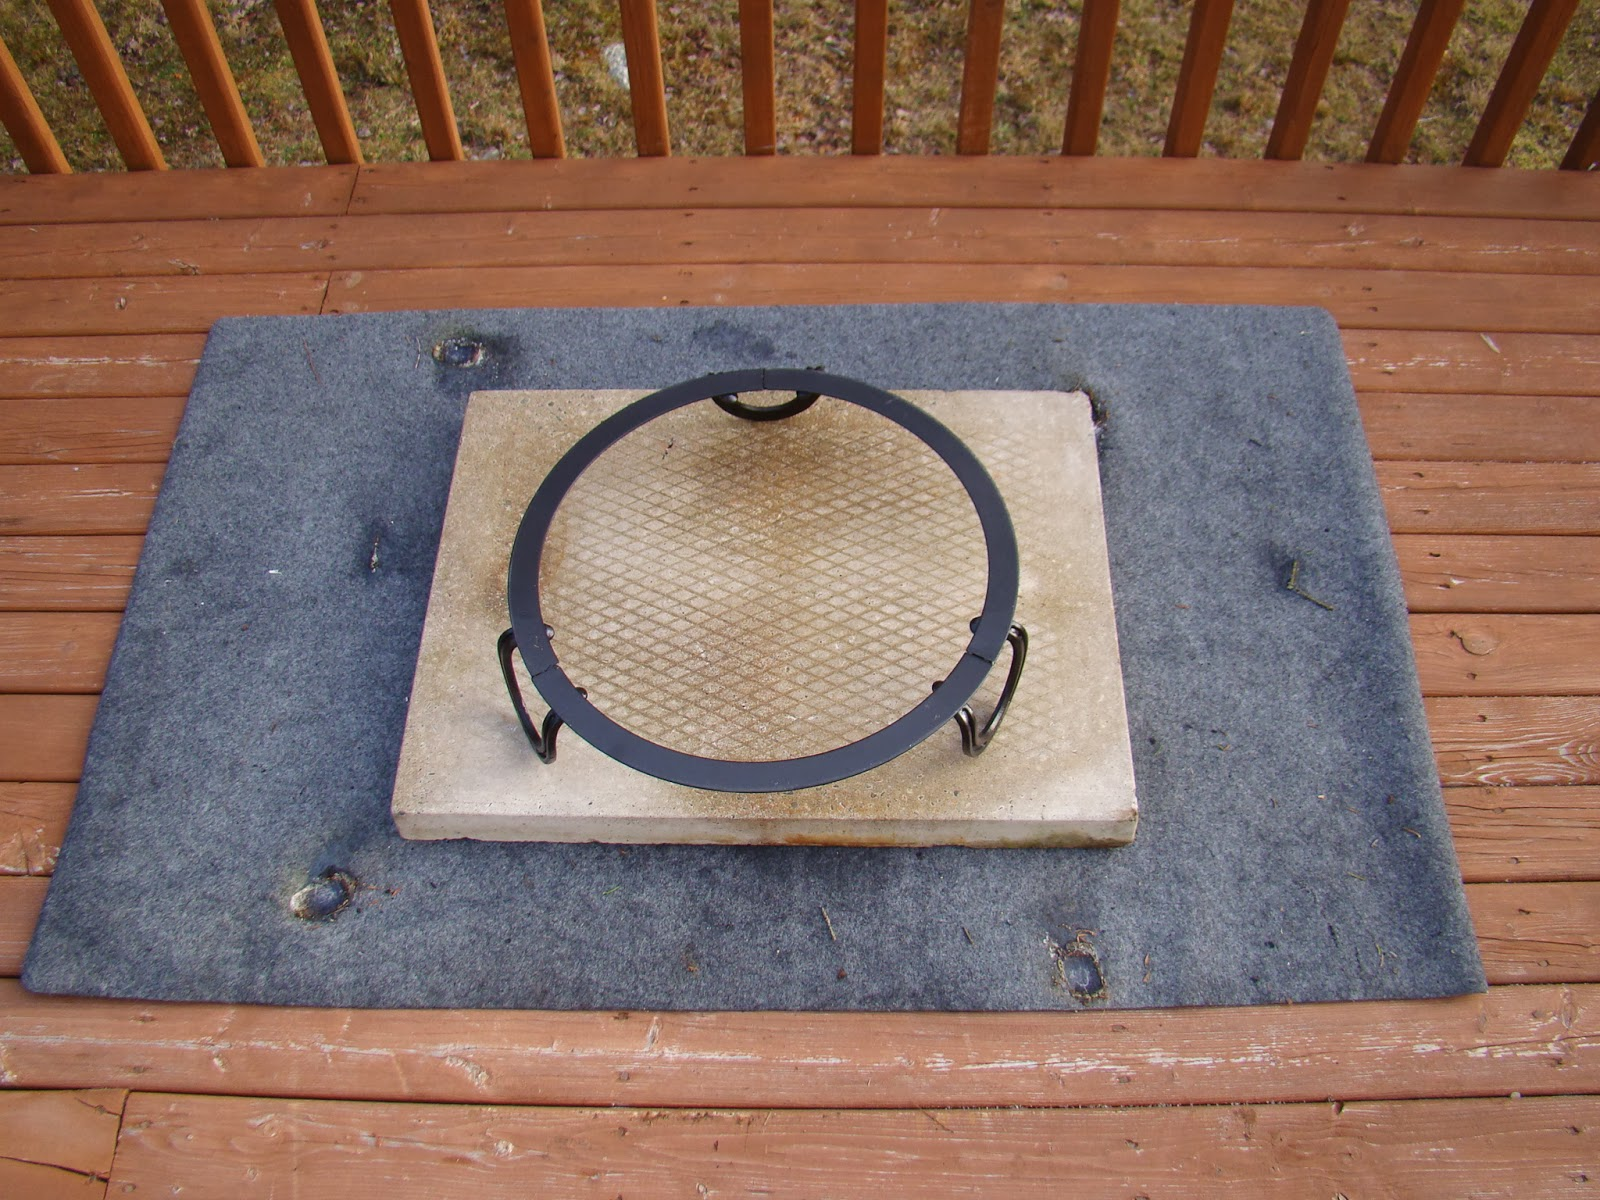 bbq heat resistance mat on the deck then on top of it a patio stone if you donu0027t do this the heat from the cooker can cause your deck to ketch fire